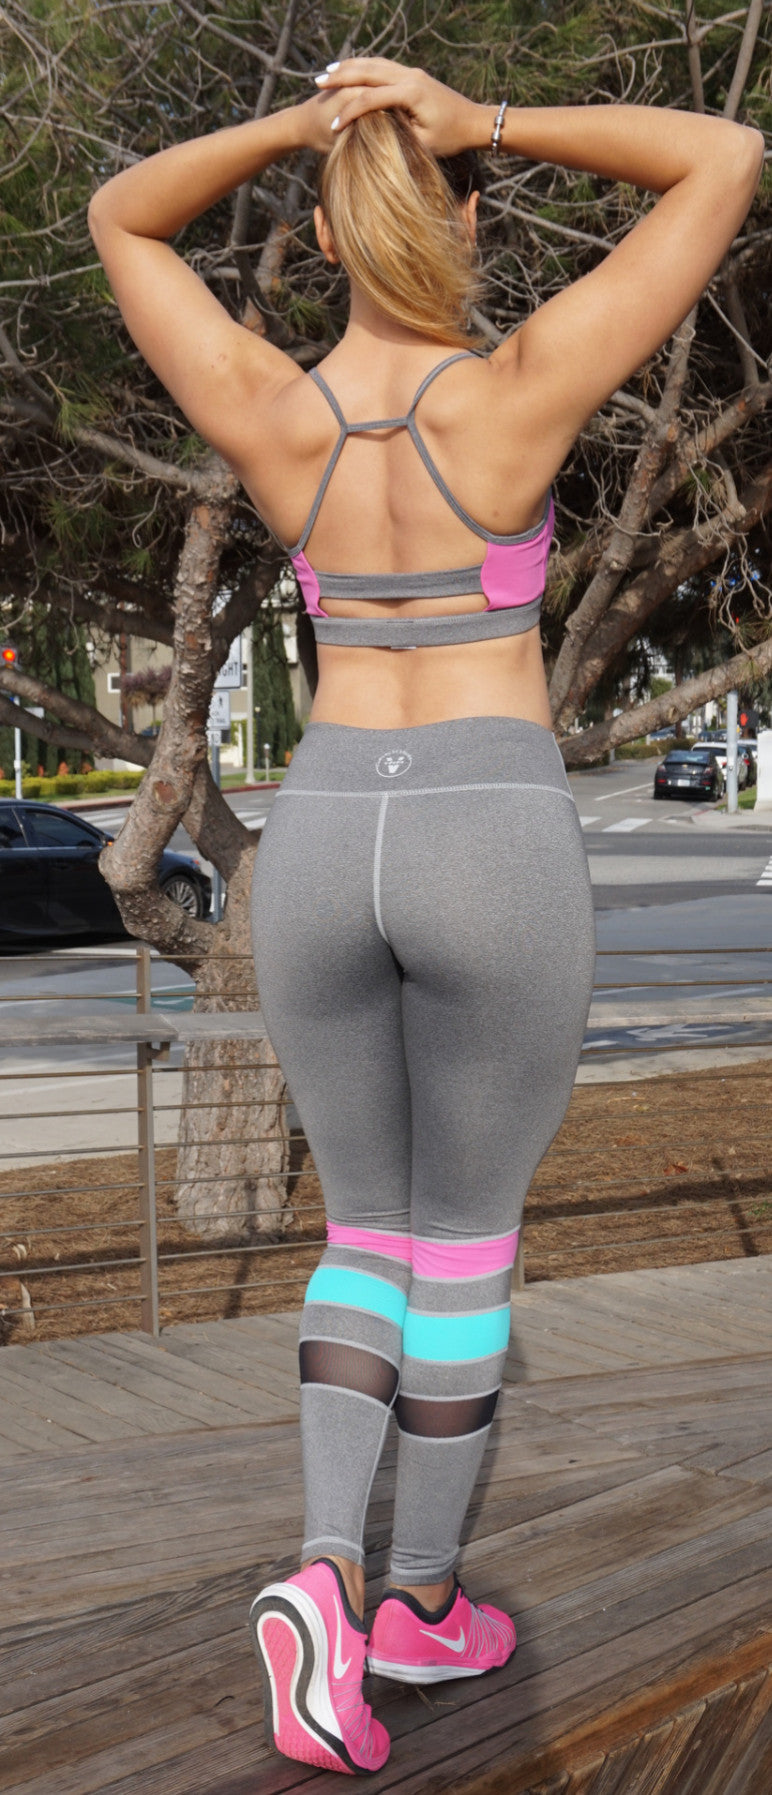 Vfit's Signature Sport Bra in Gray